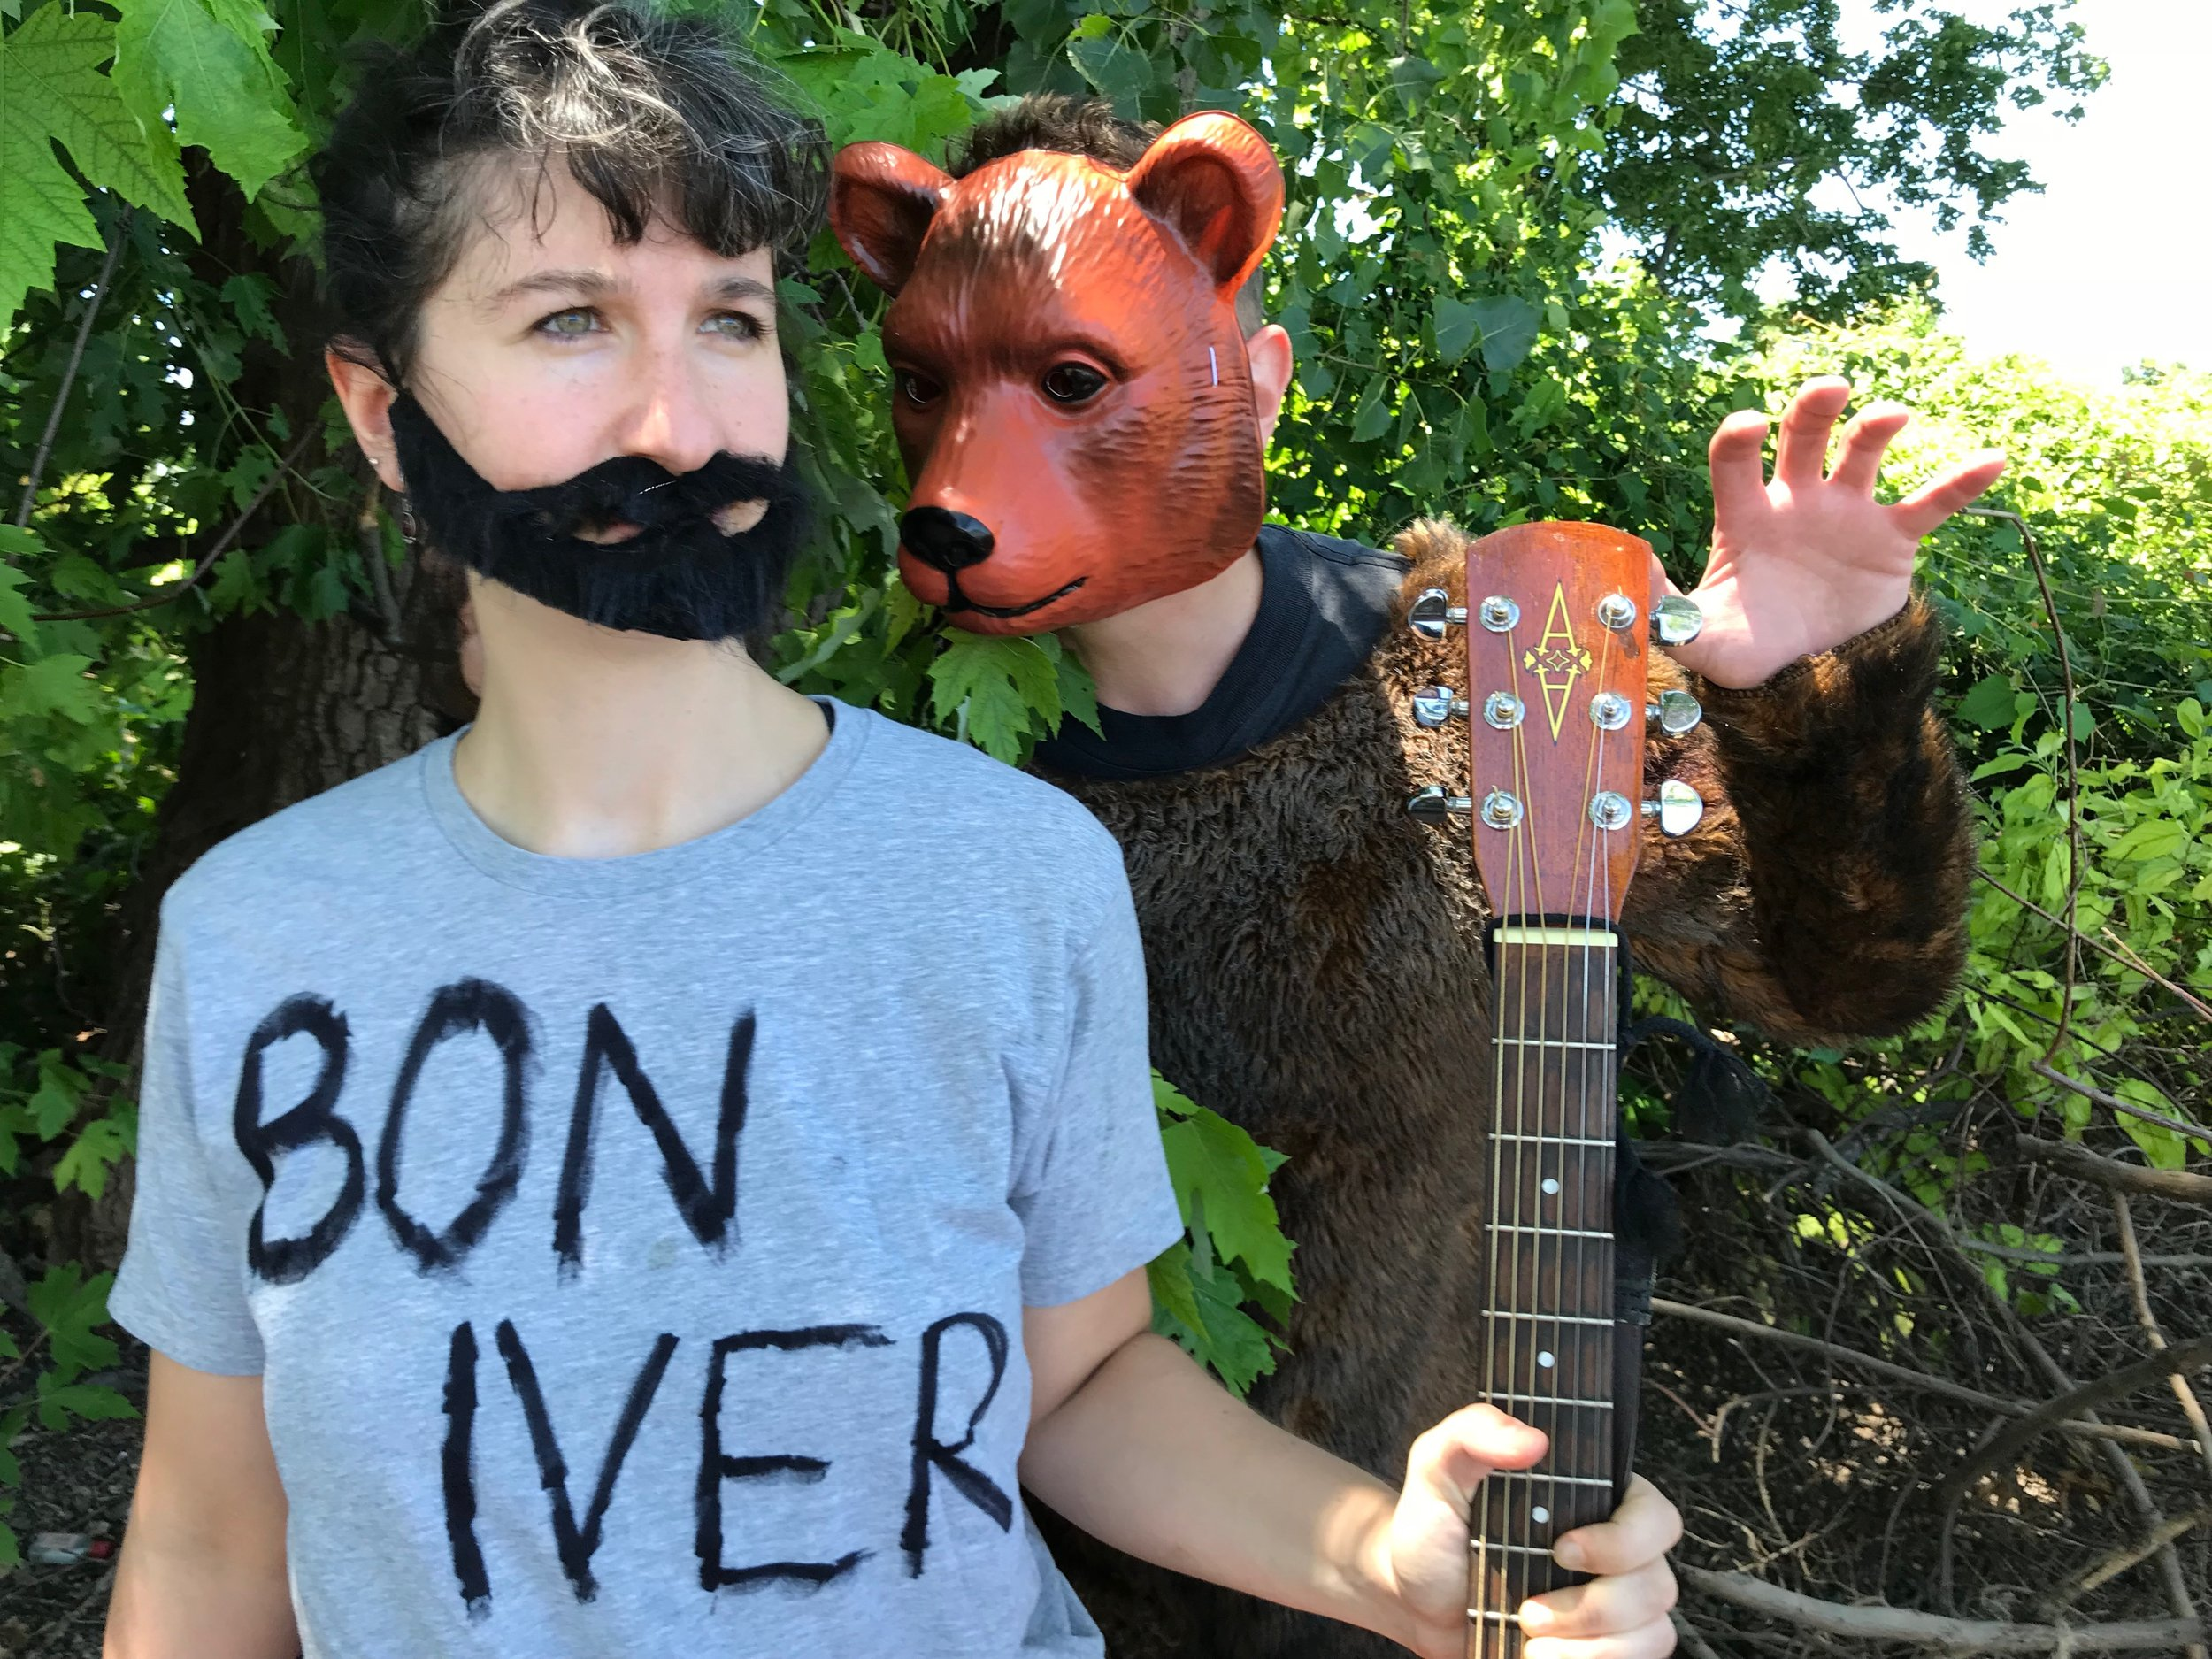 Emily Schuman (as Bon Iver) & doug greene (as The Bear)